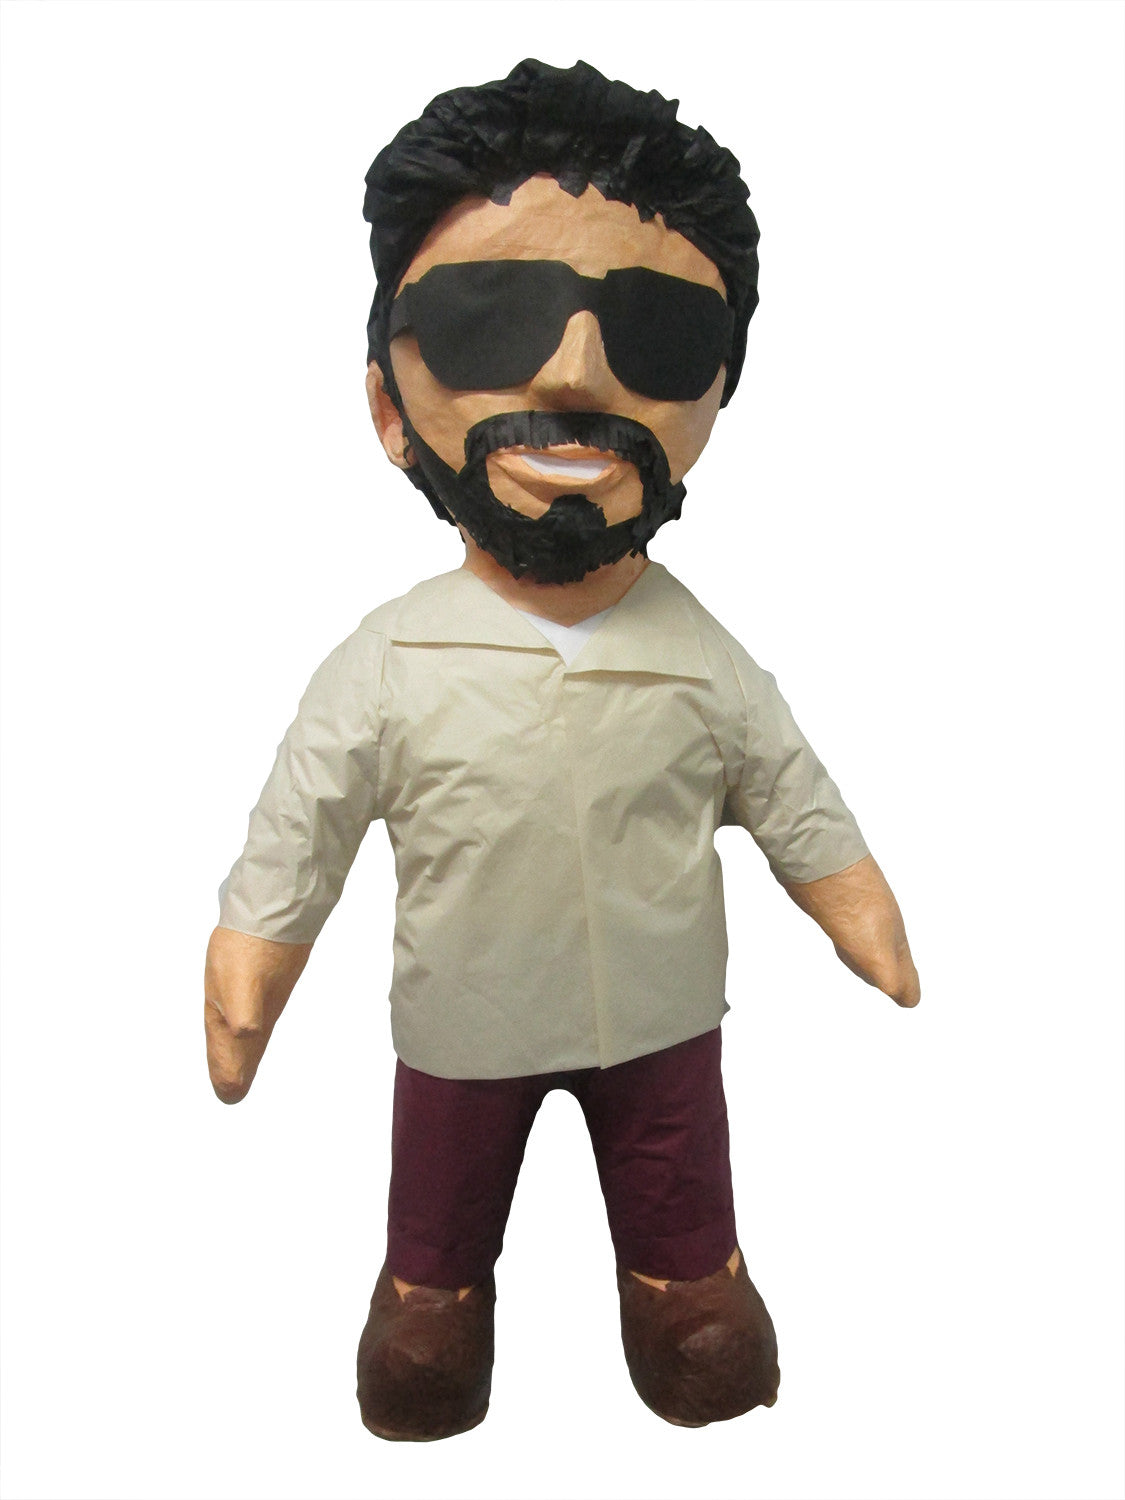 Man With White Shirt and Sunglasses Custom Pinata